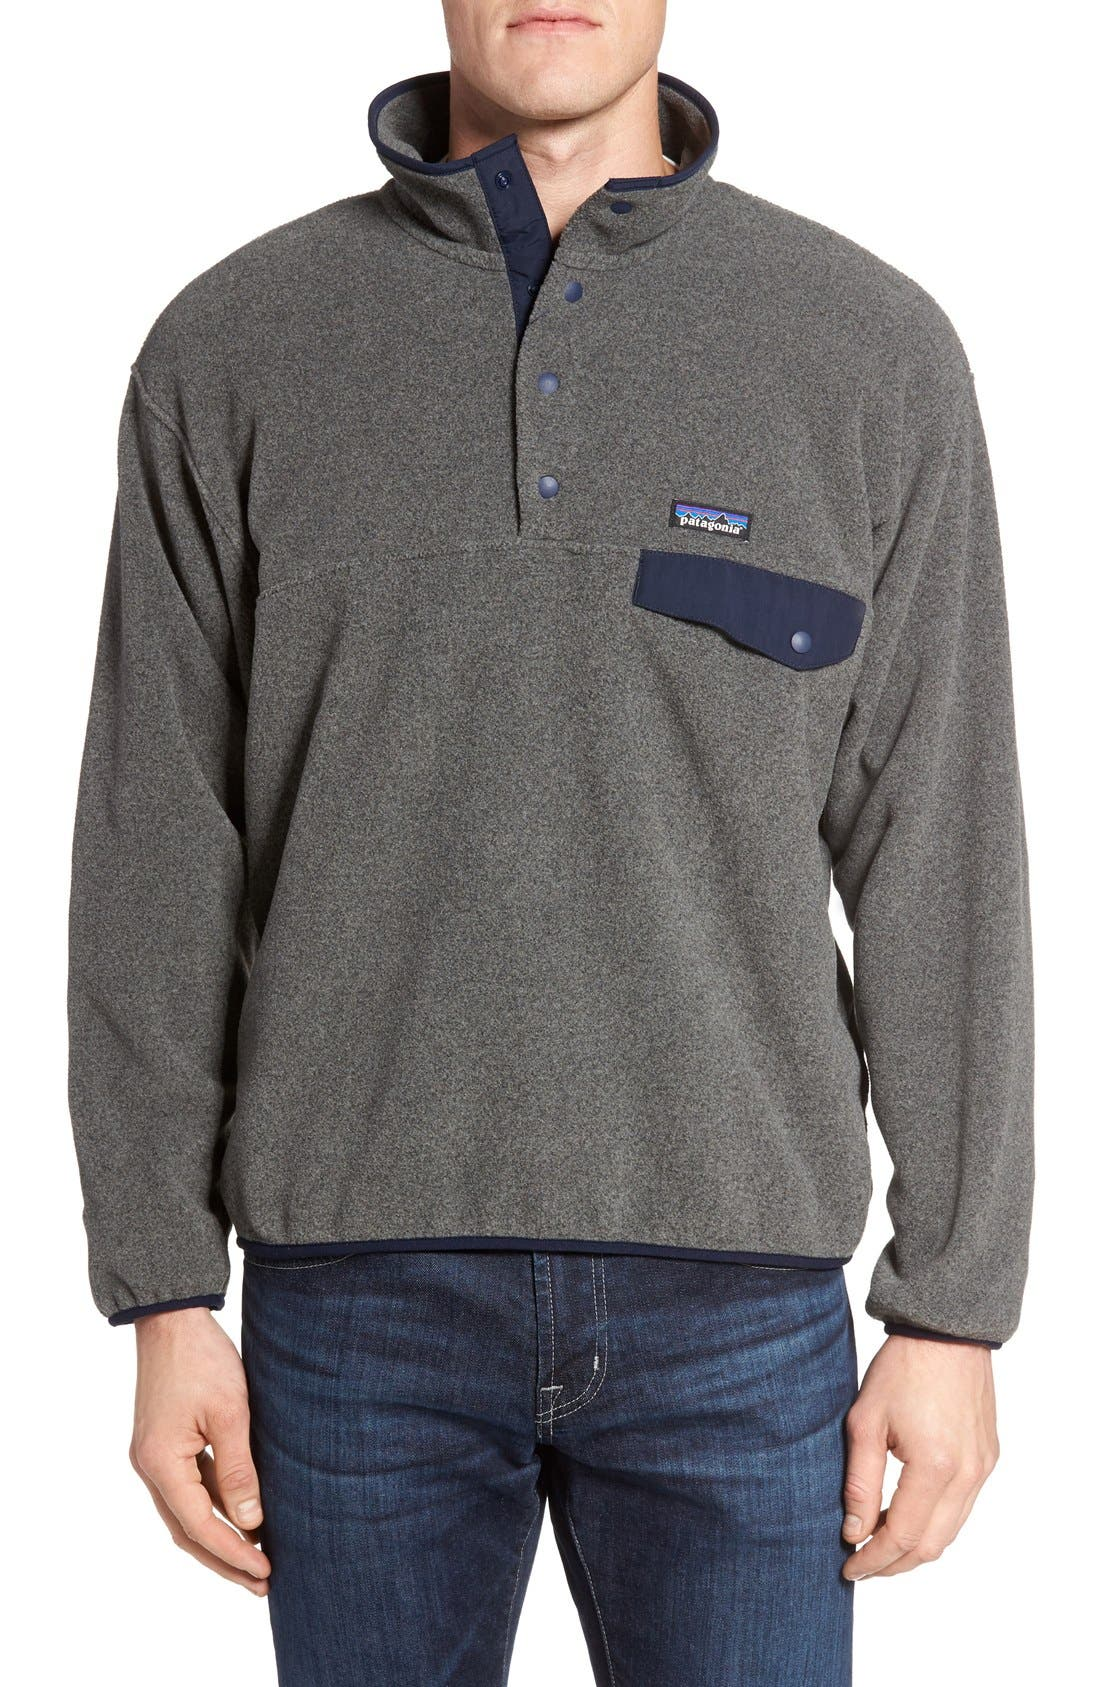 Synchilla<sup>®</sup> Snap-T<sup>®</sup> Pullover,                         Main,                         color, Nickel/ Navy Blue